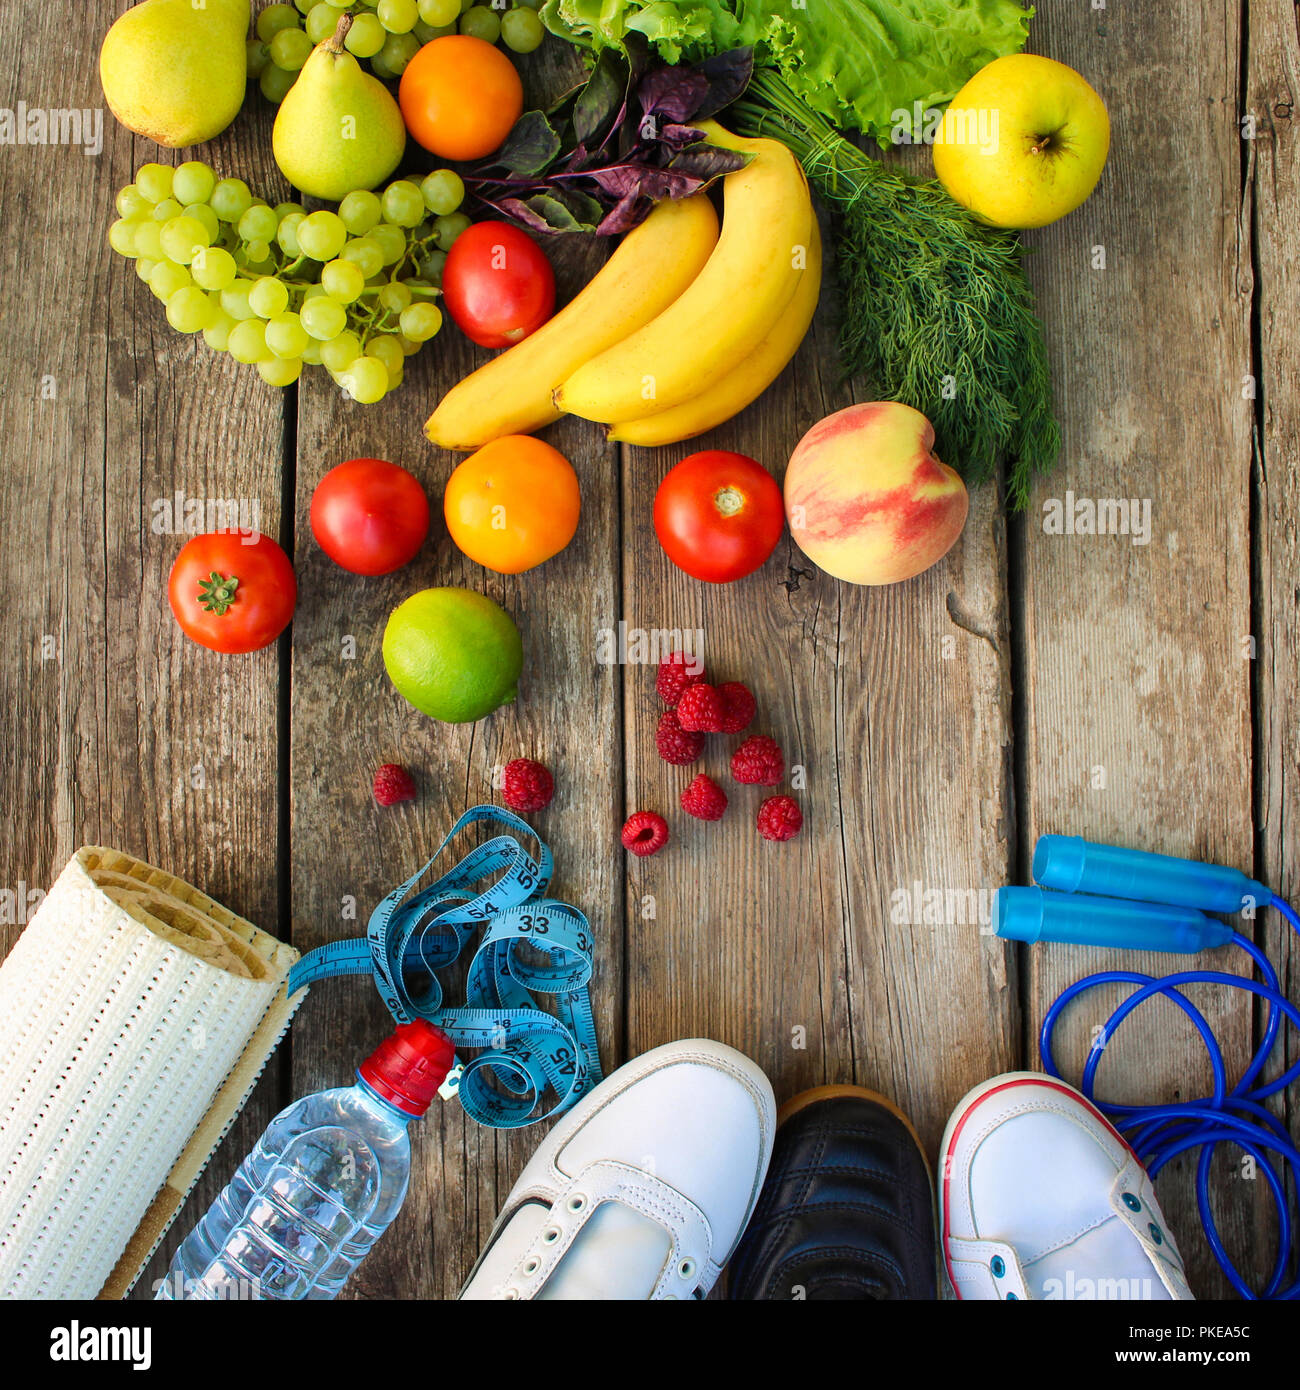 Fruits, vegetables and sports goods on wooden background. - Stock Image